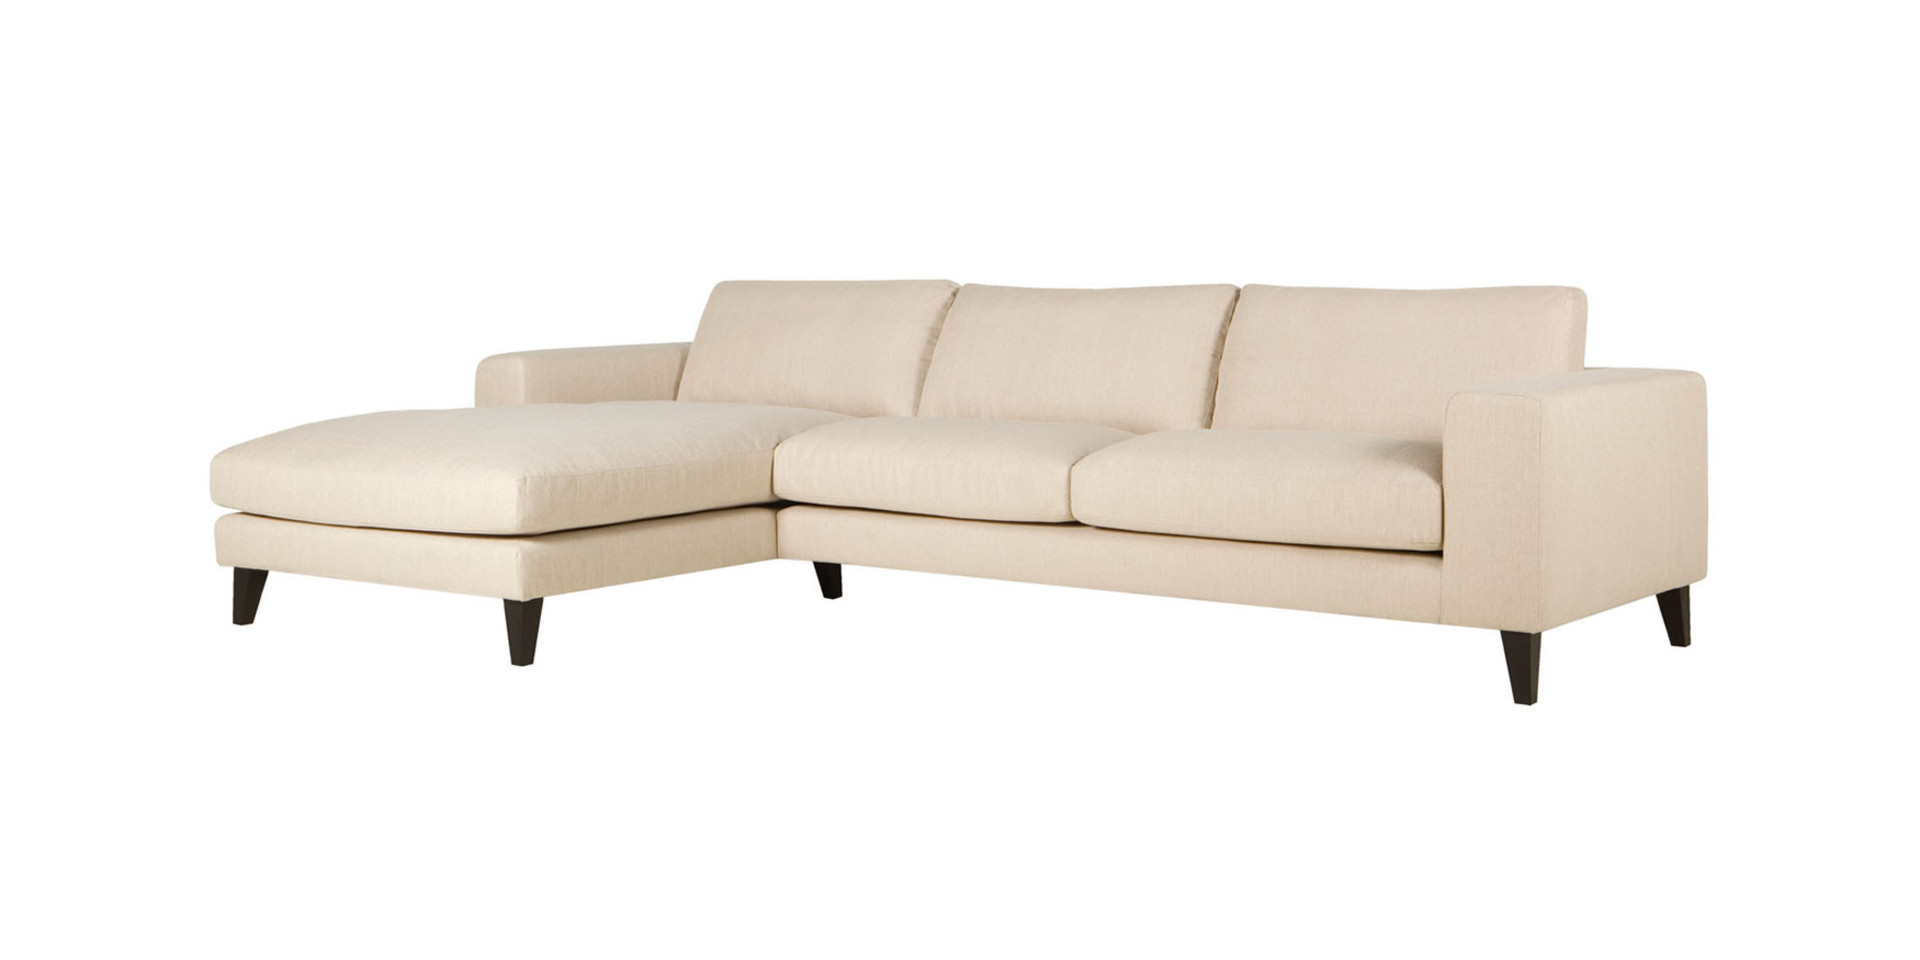 sits-passion-angle-set2_cedros2_beige_3